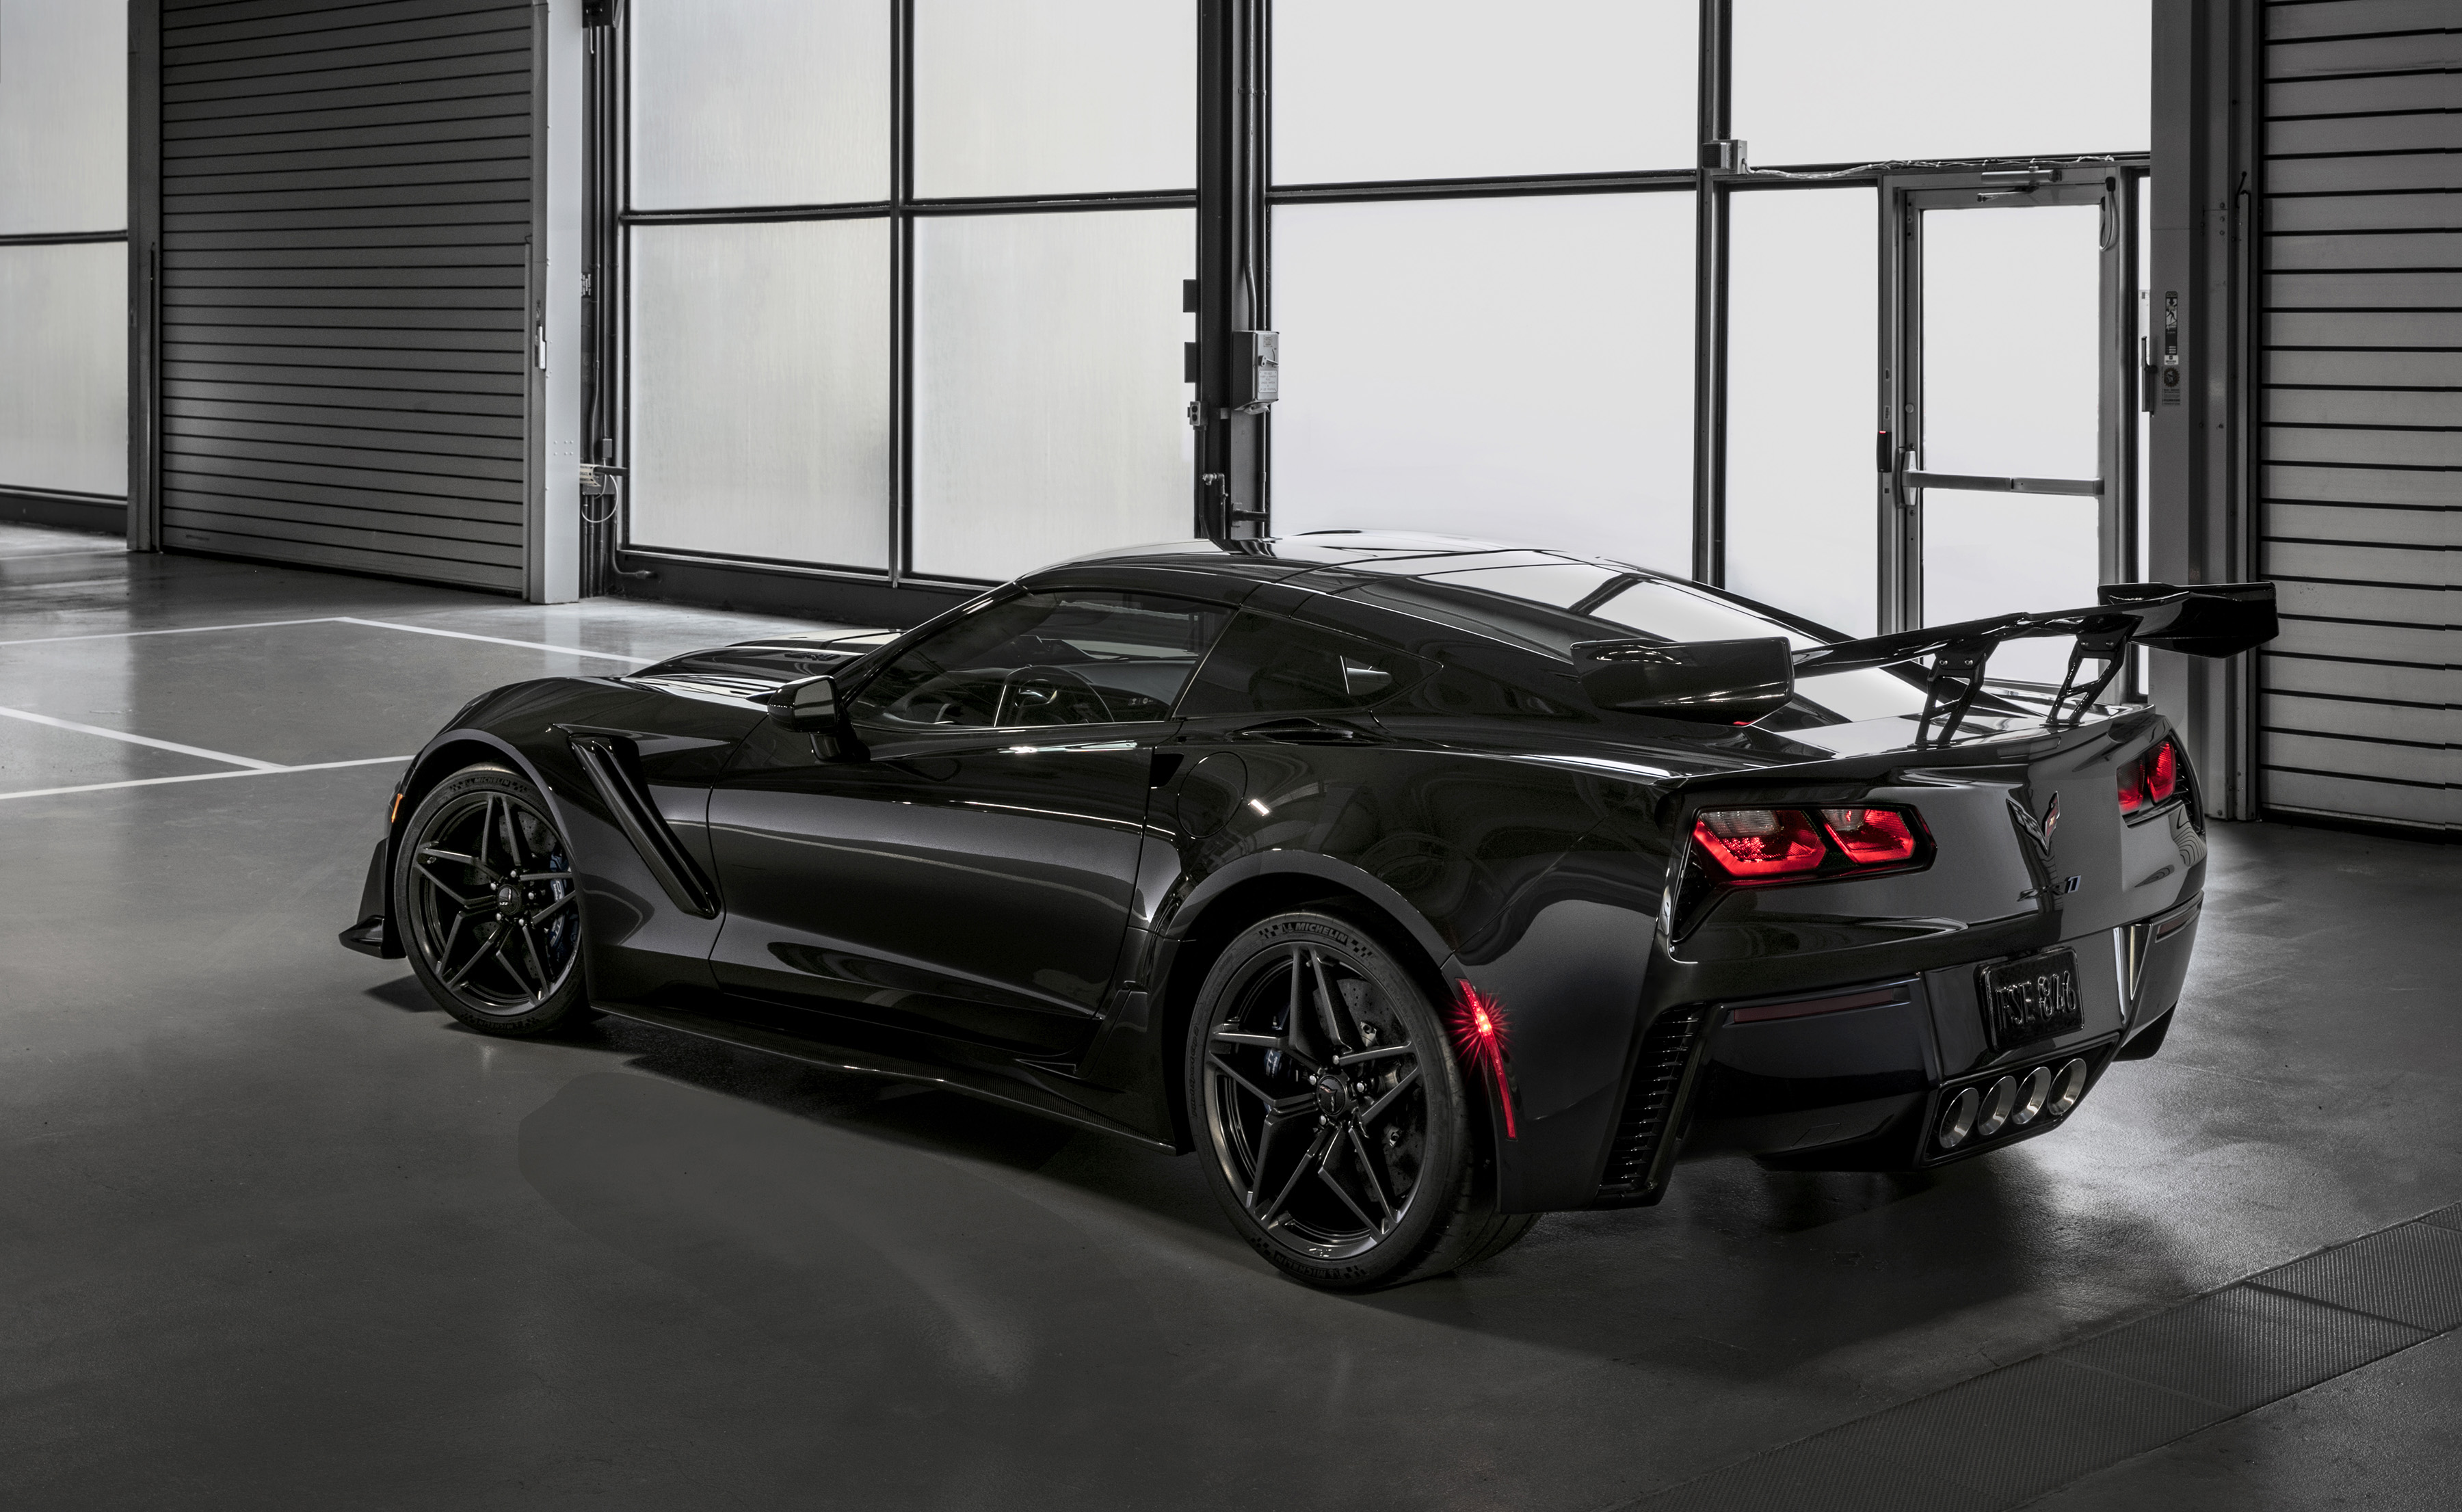 2019 Zr1 Black >> Pair Of Corvettes Including First 2019 Zr1 Fetches 2 3m At Auction